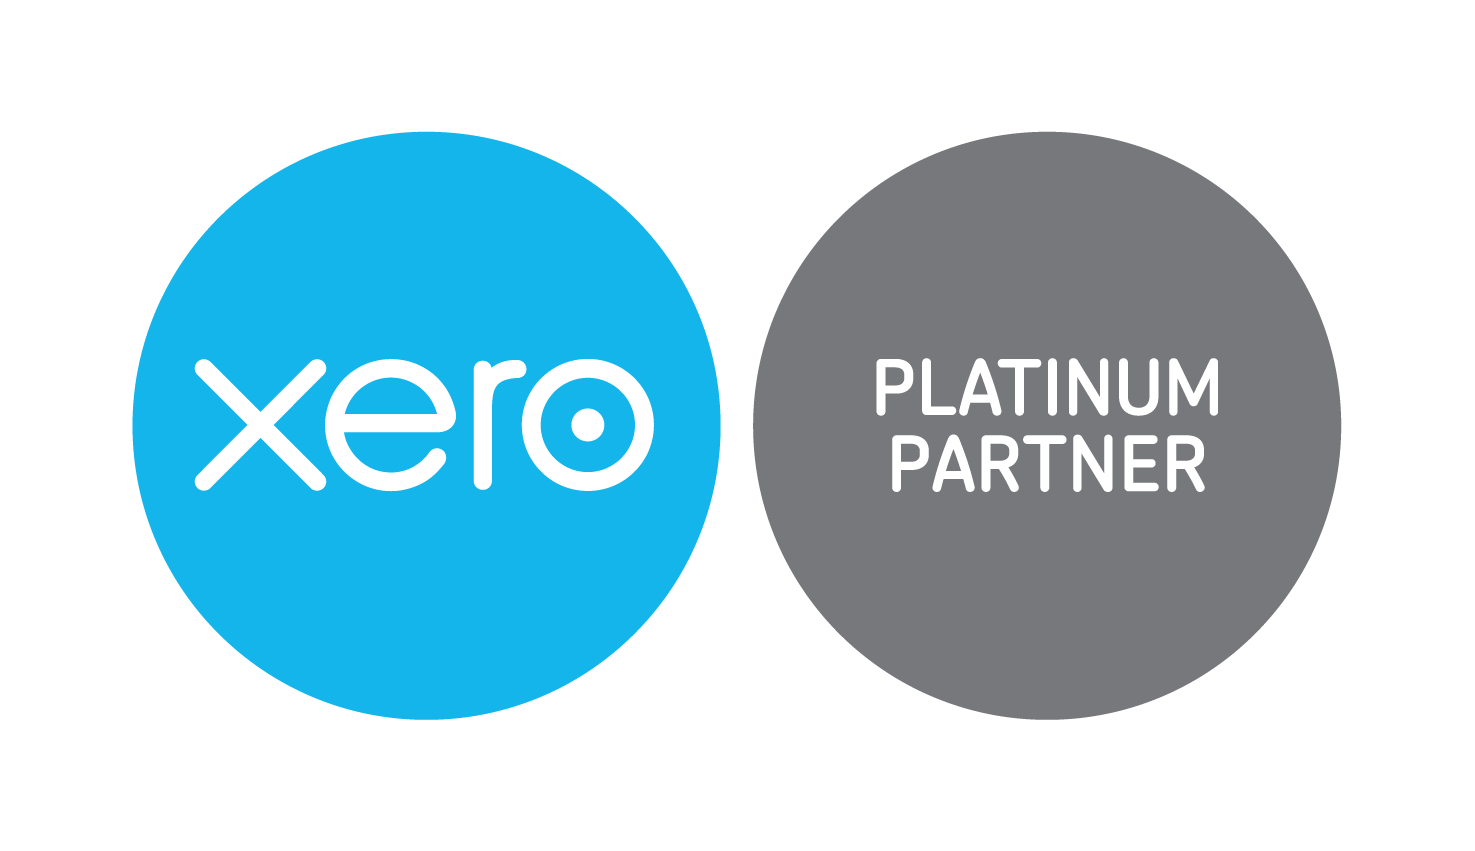 xero-platinum-partner-badge